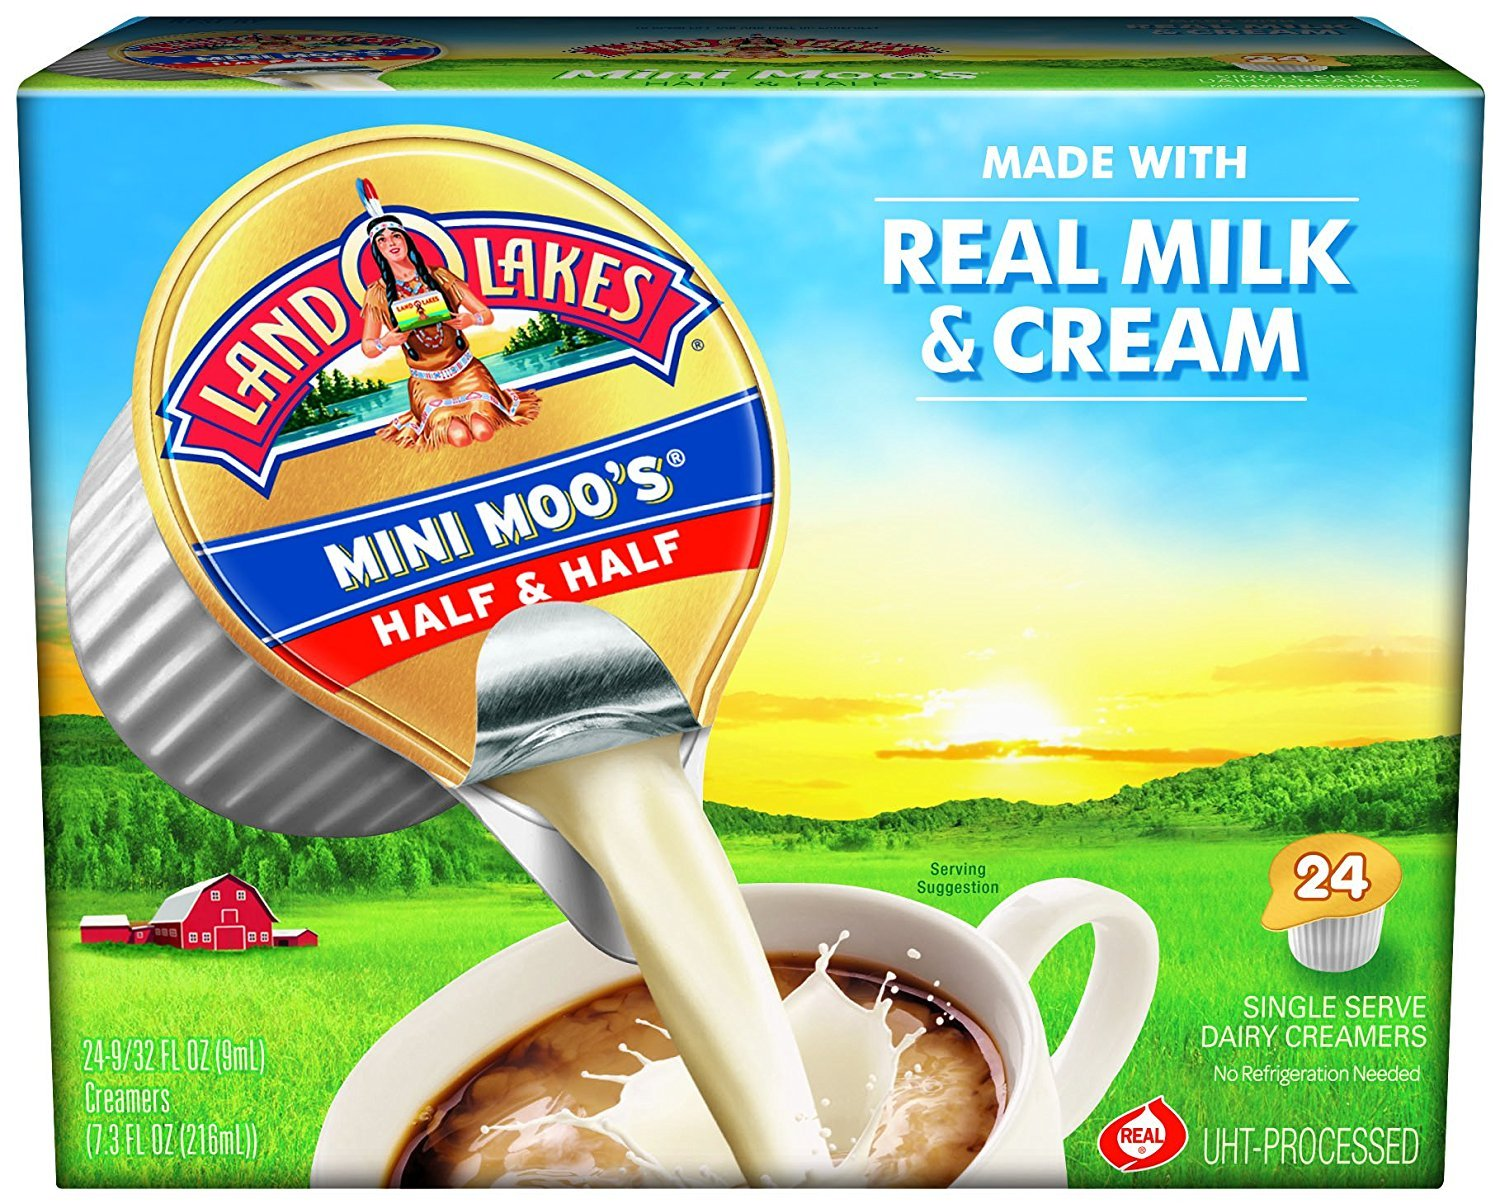 Land O Lakes Mini Moo's Real Cream Half & Half, 9 mL Cups, 24 Count (Pack of 12) by Land O Lakes (Image #1)